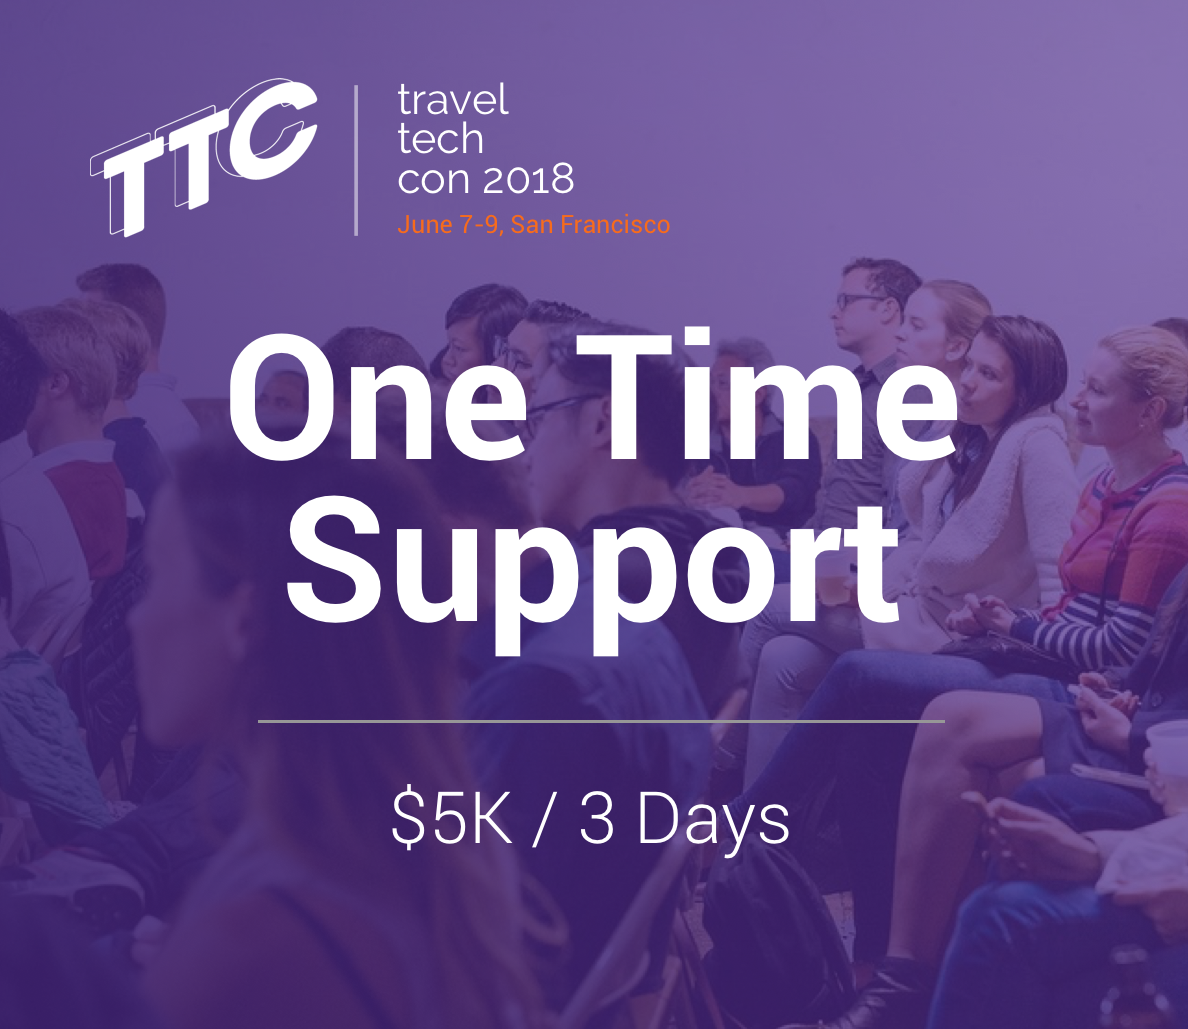 Support the three days of the conference. Gain exposure & deliver custom communication during TTC18.